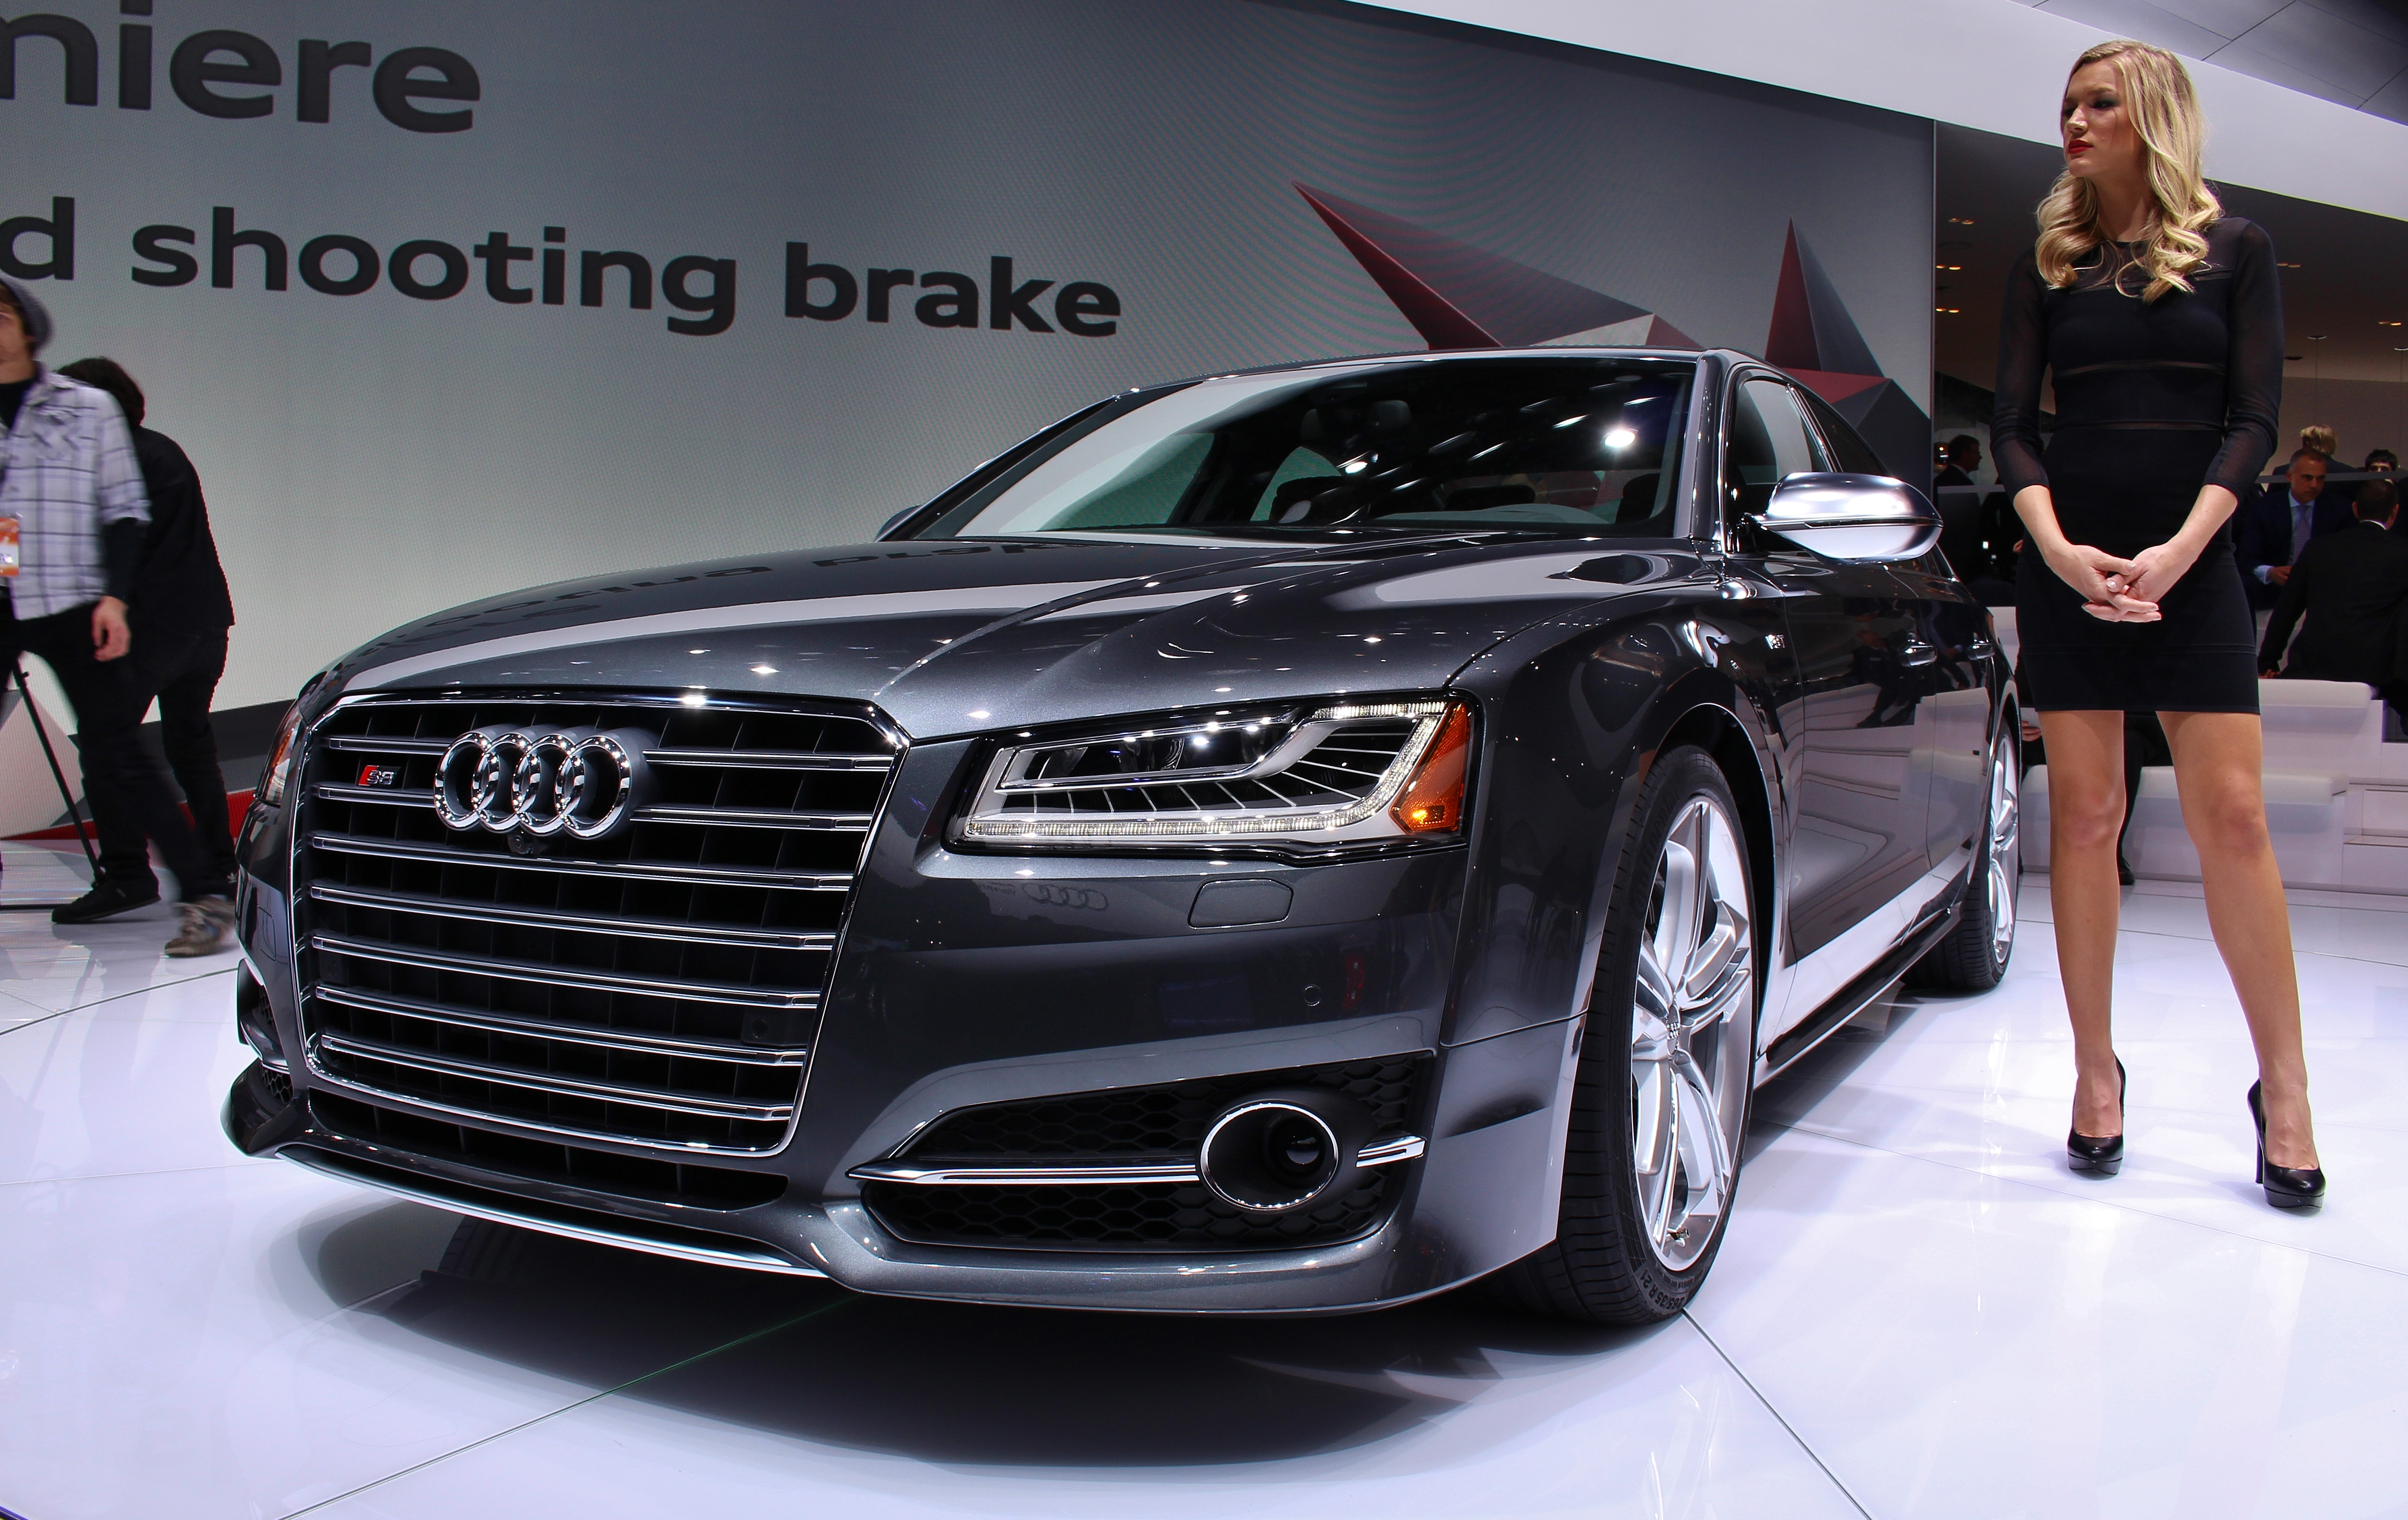 NAIAS 2014 Day 1: The Reveals – Limited Slip Blog